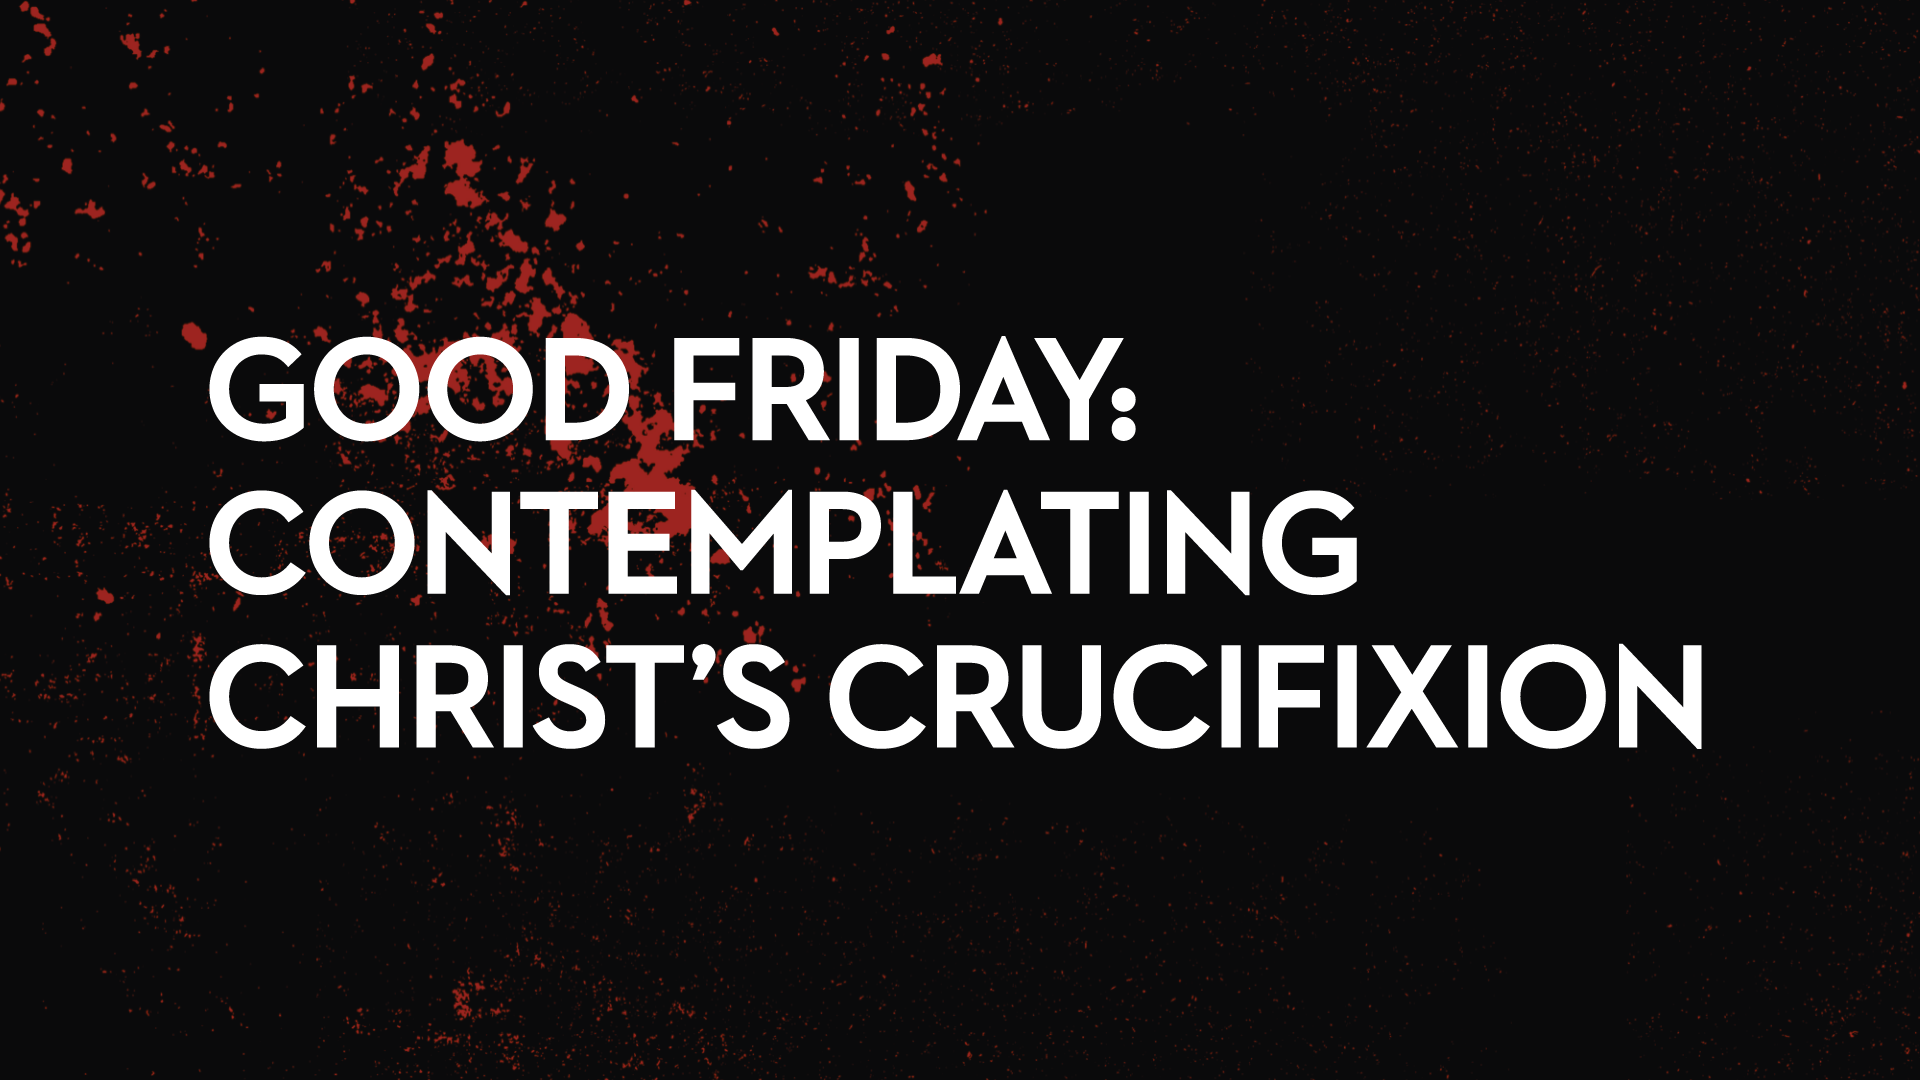 Good Friday: Contemplating Christ's Crucifiction    March 30th, 2018